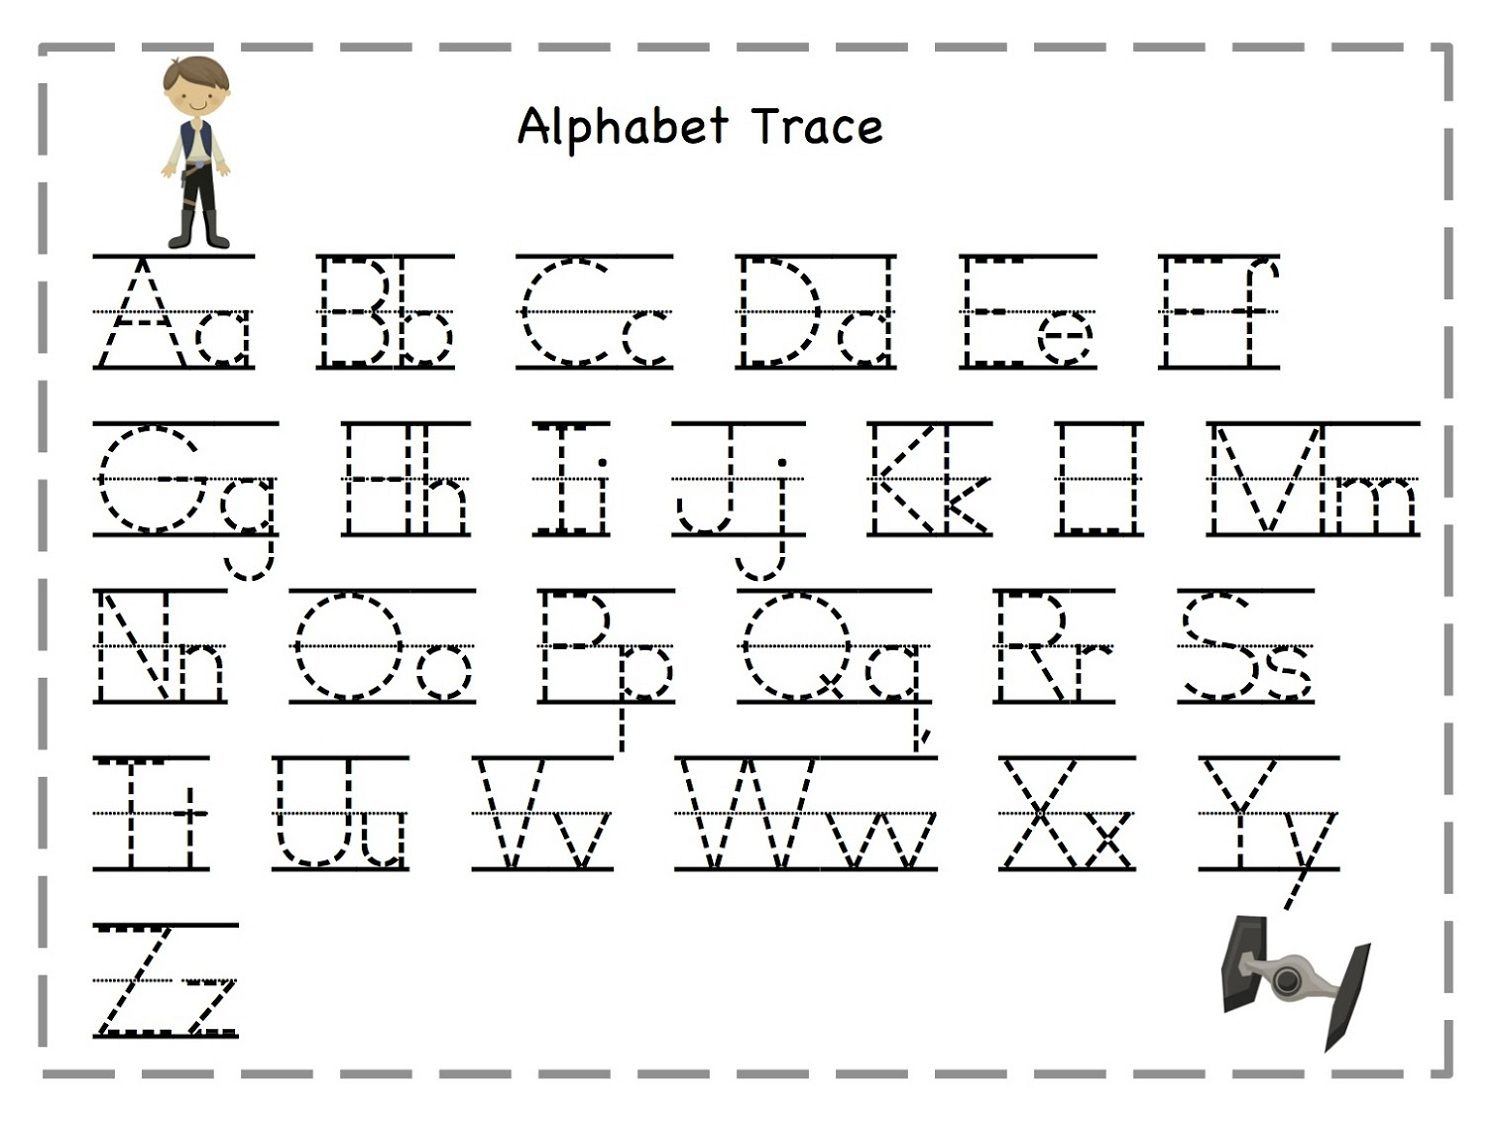 worksheet Free Alphabet Tracing Worksheets tracing letters for kids activities pinterest today our site present a new post about your little child can do practice at home with wor